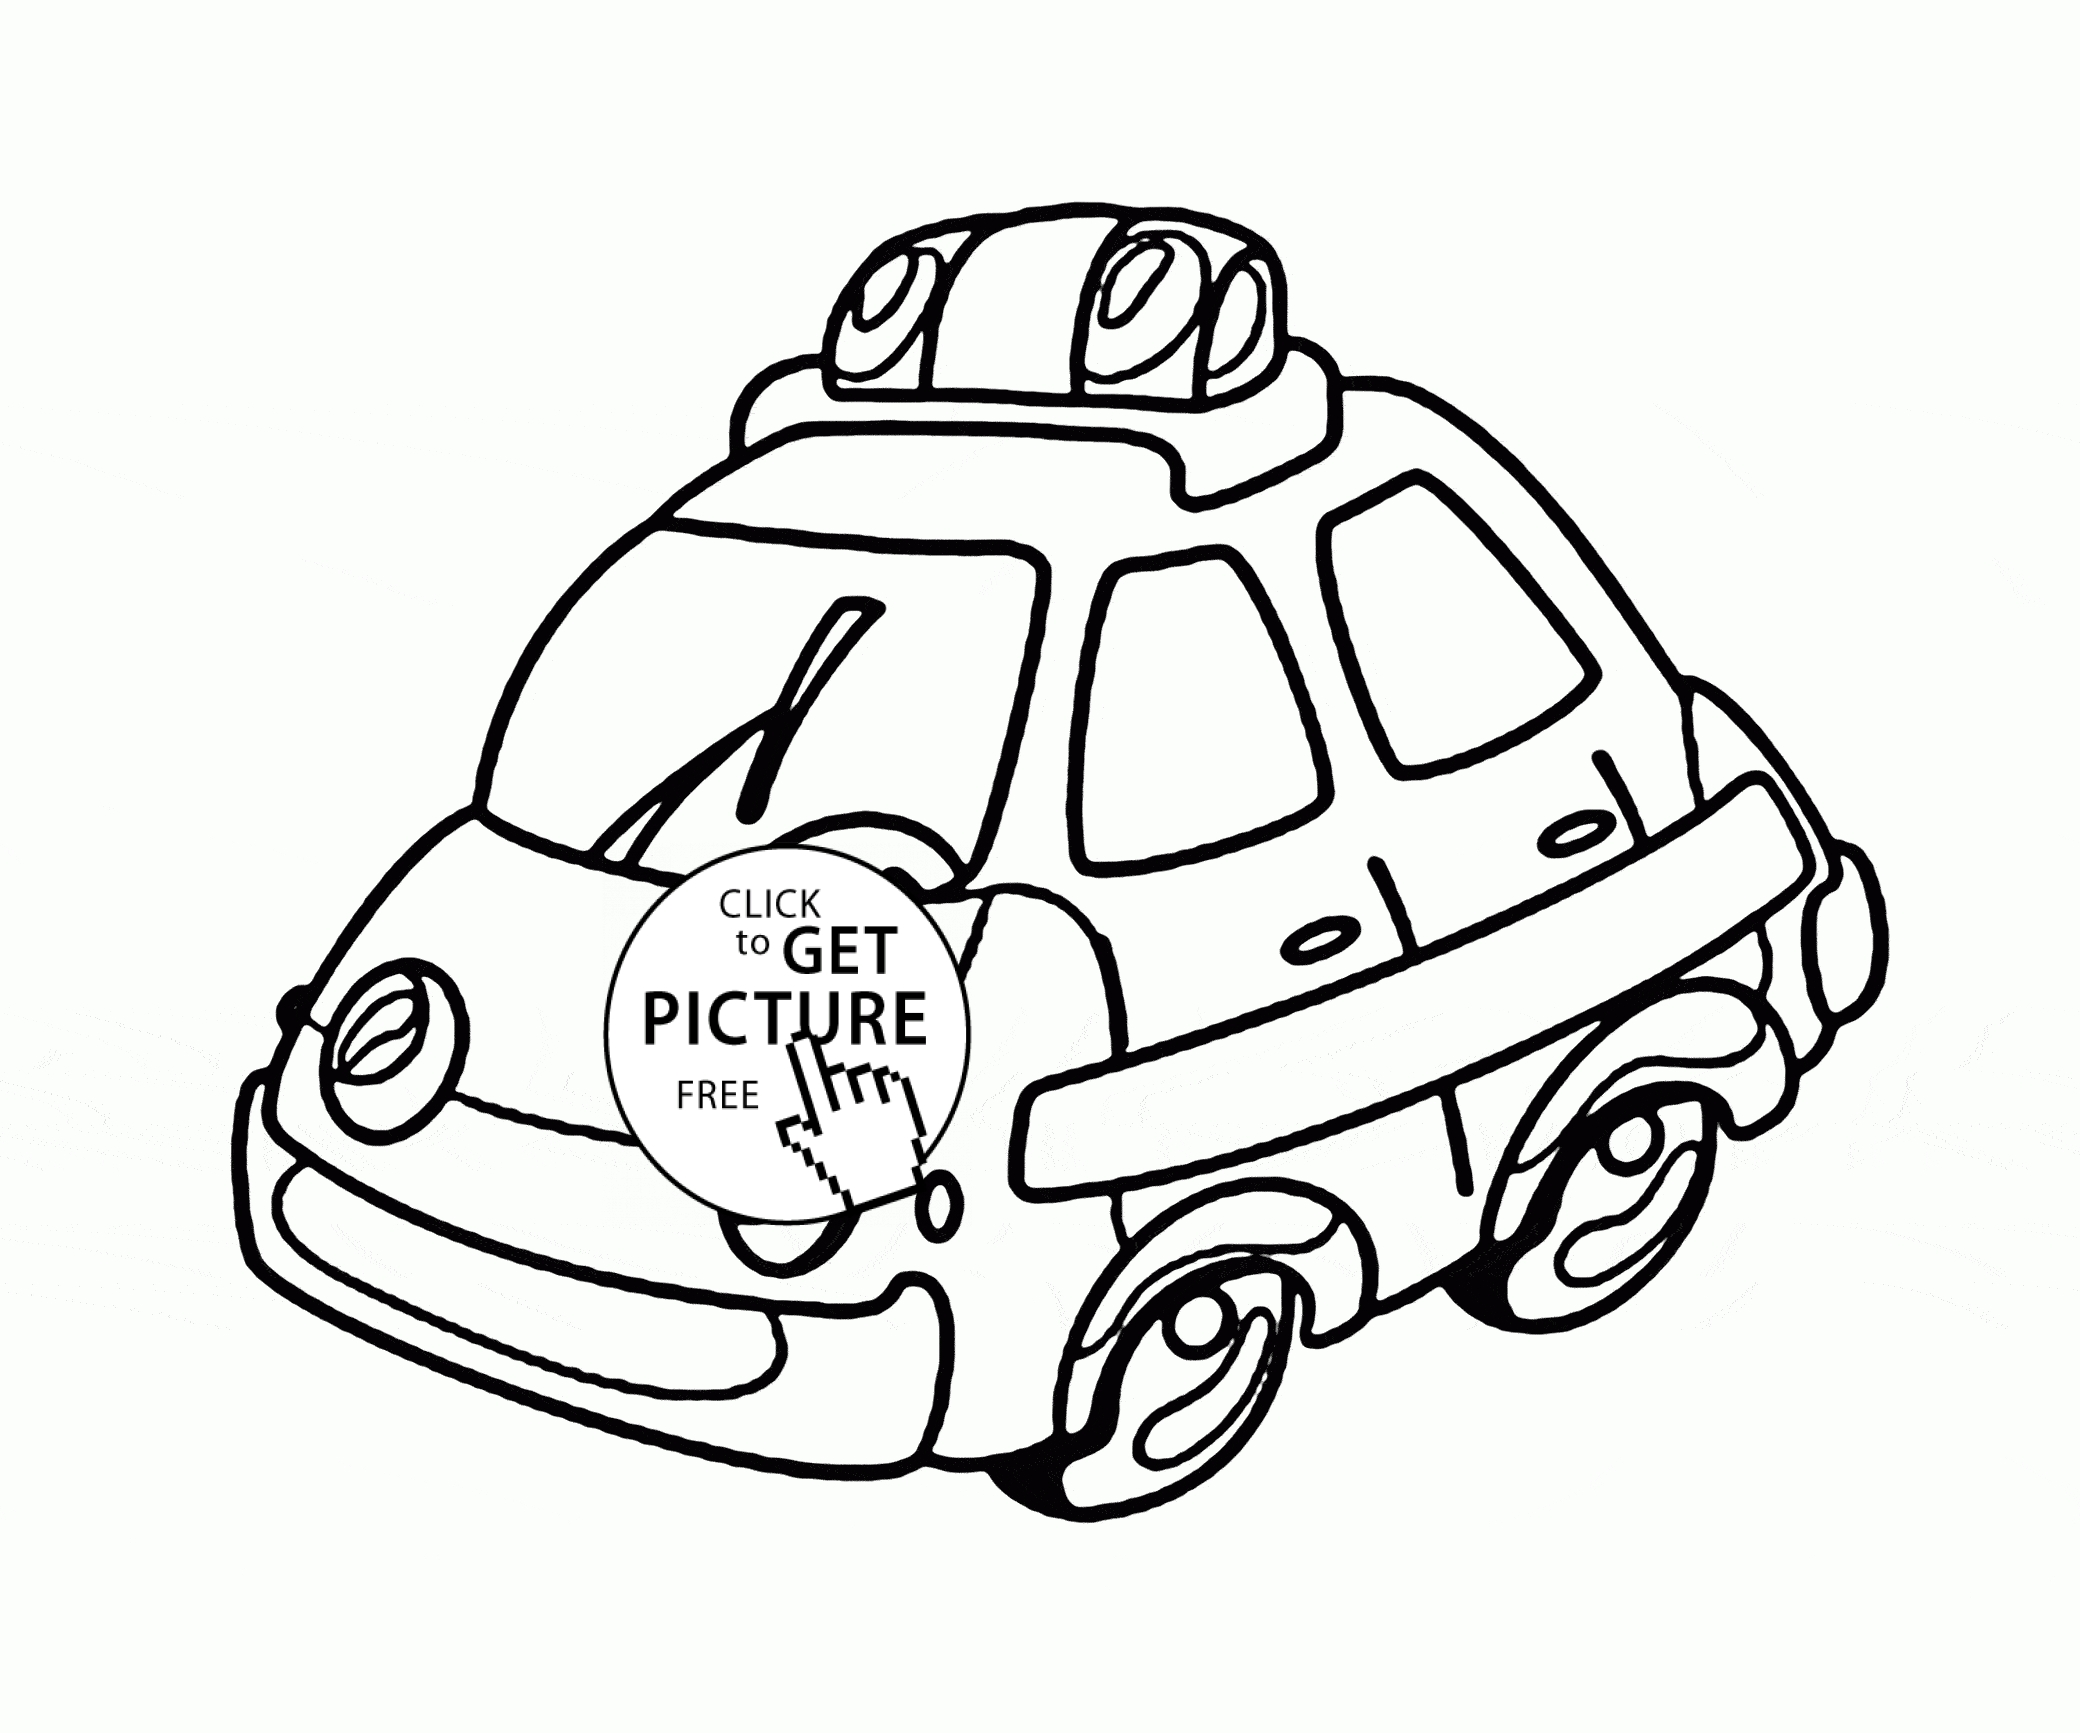 20 Transportation Coloring Pages Images | FREE COLORING PAGES - Part 2